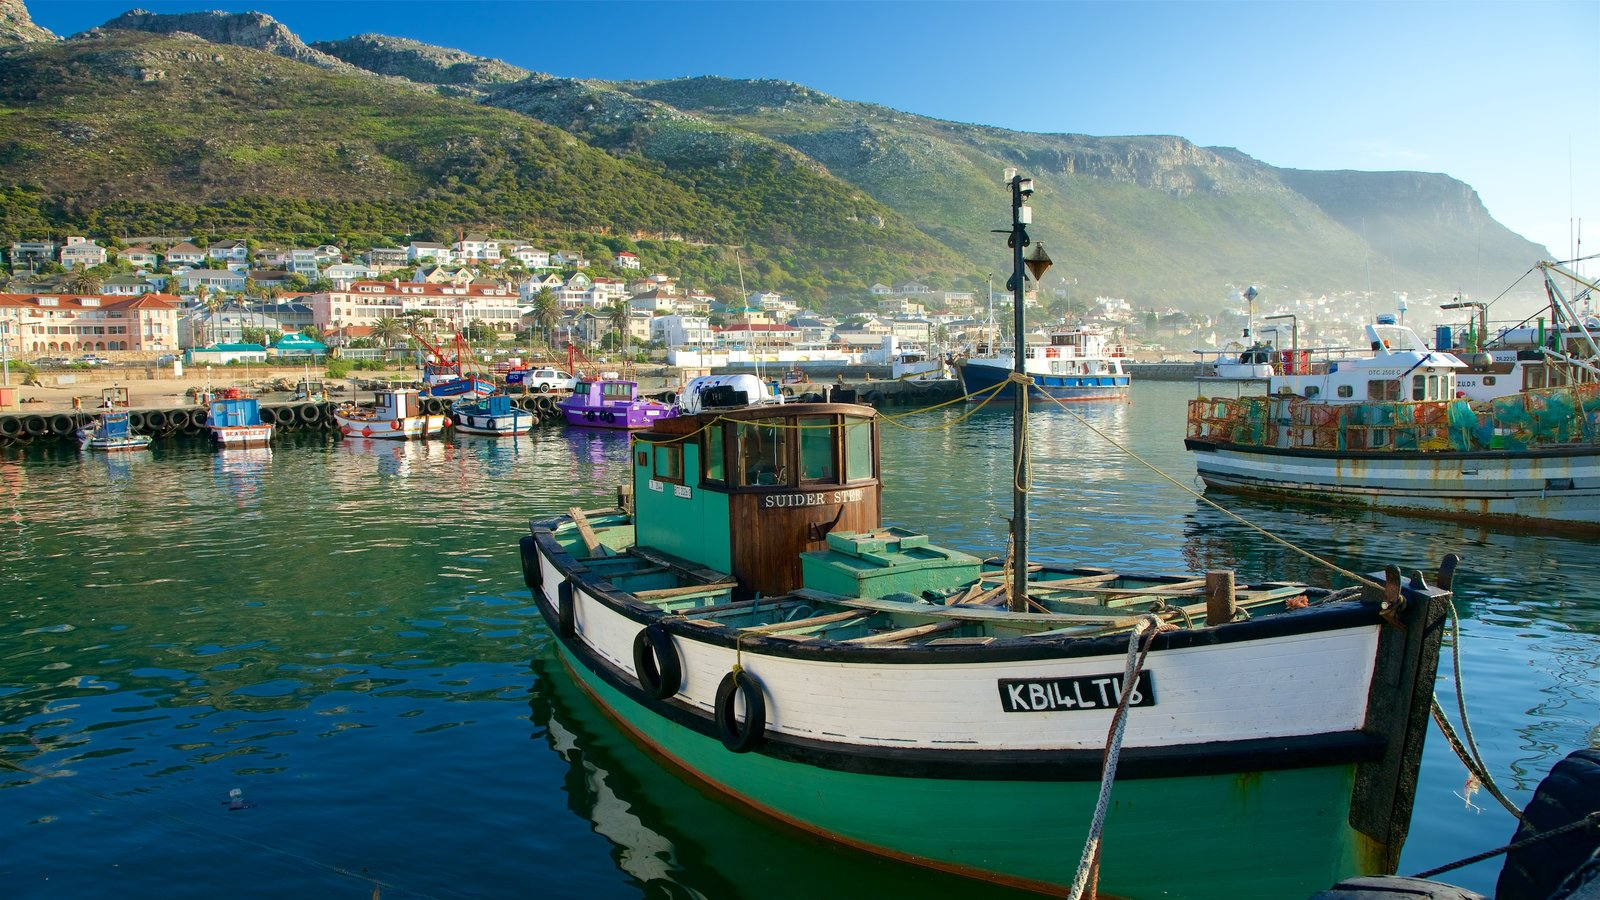 Kalk Bay which includes boating, a coastal town and a bay or harbour